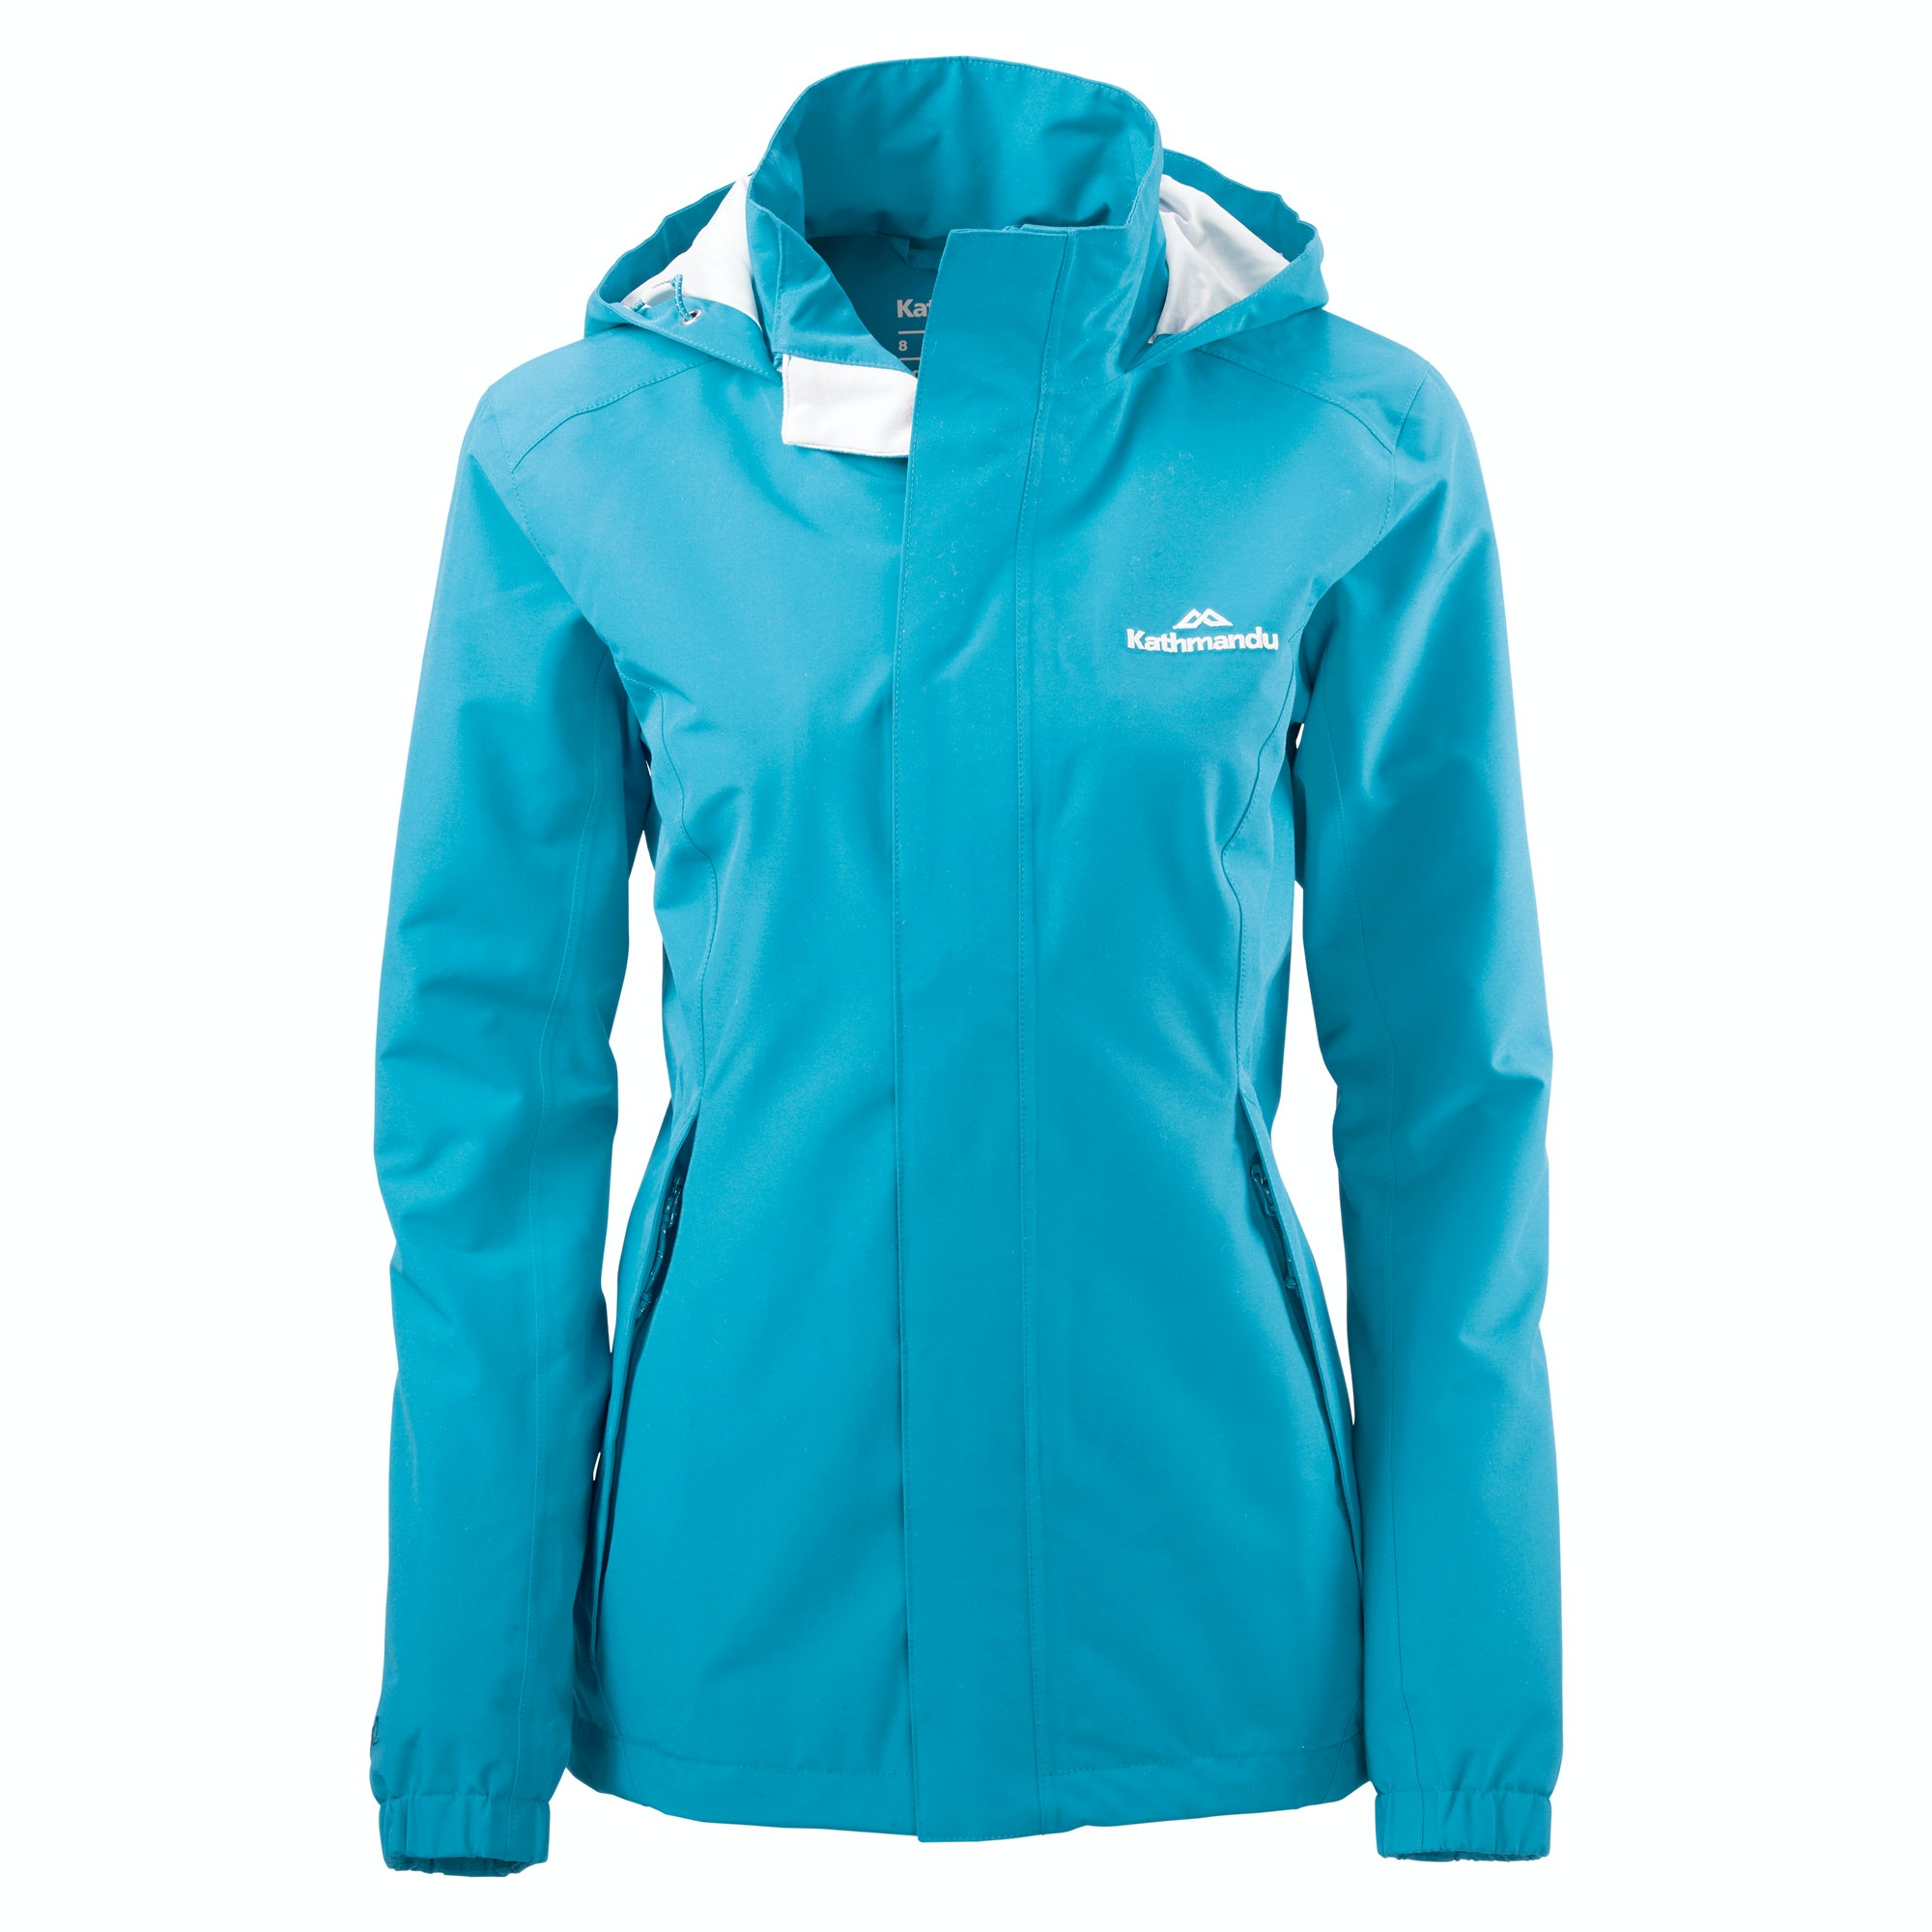 Womens waterproof rain jackets